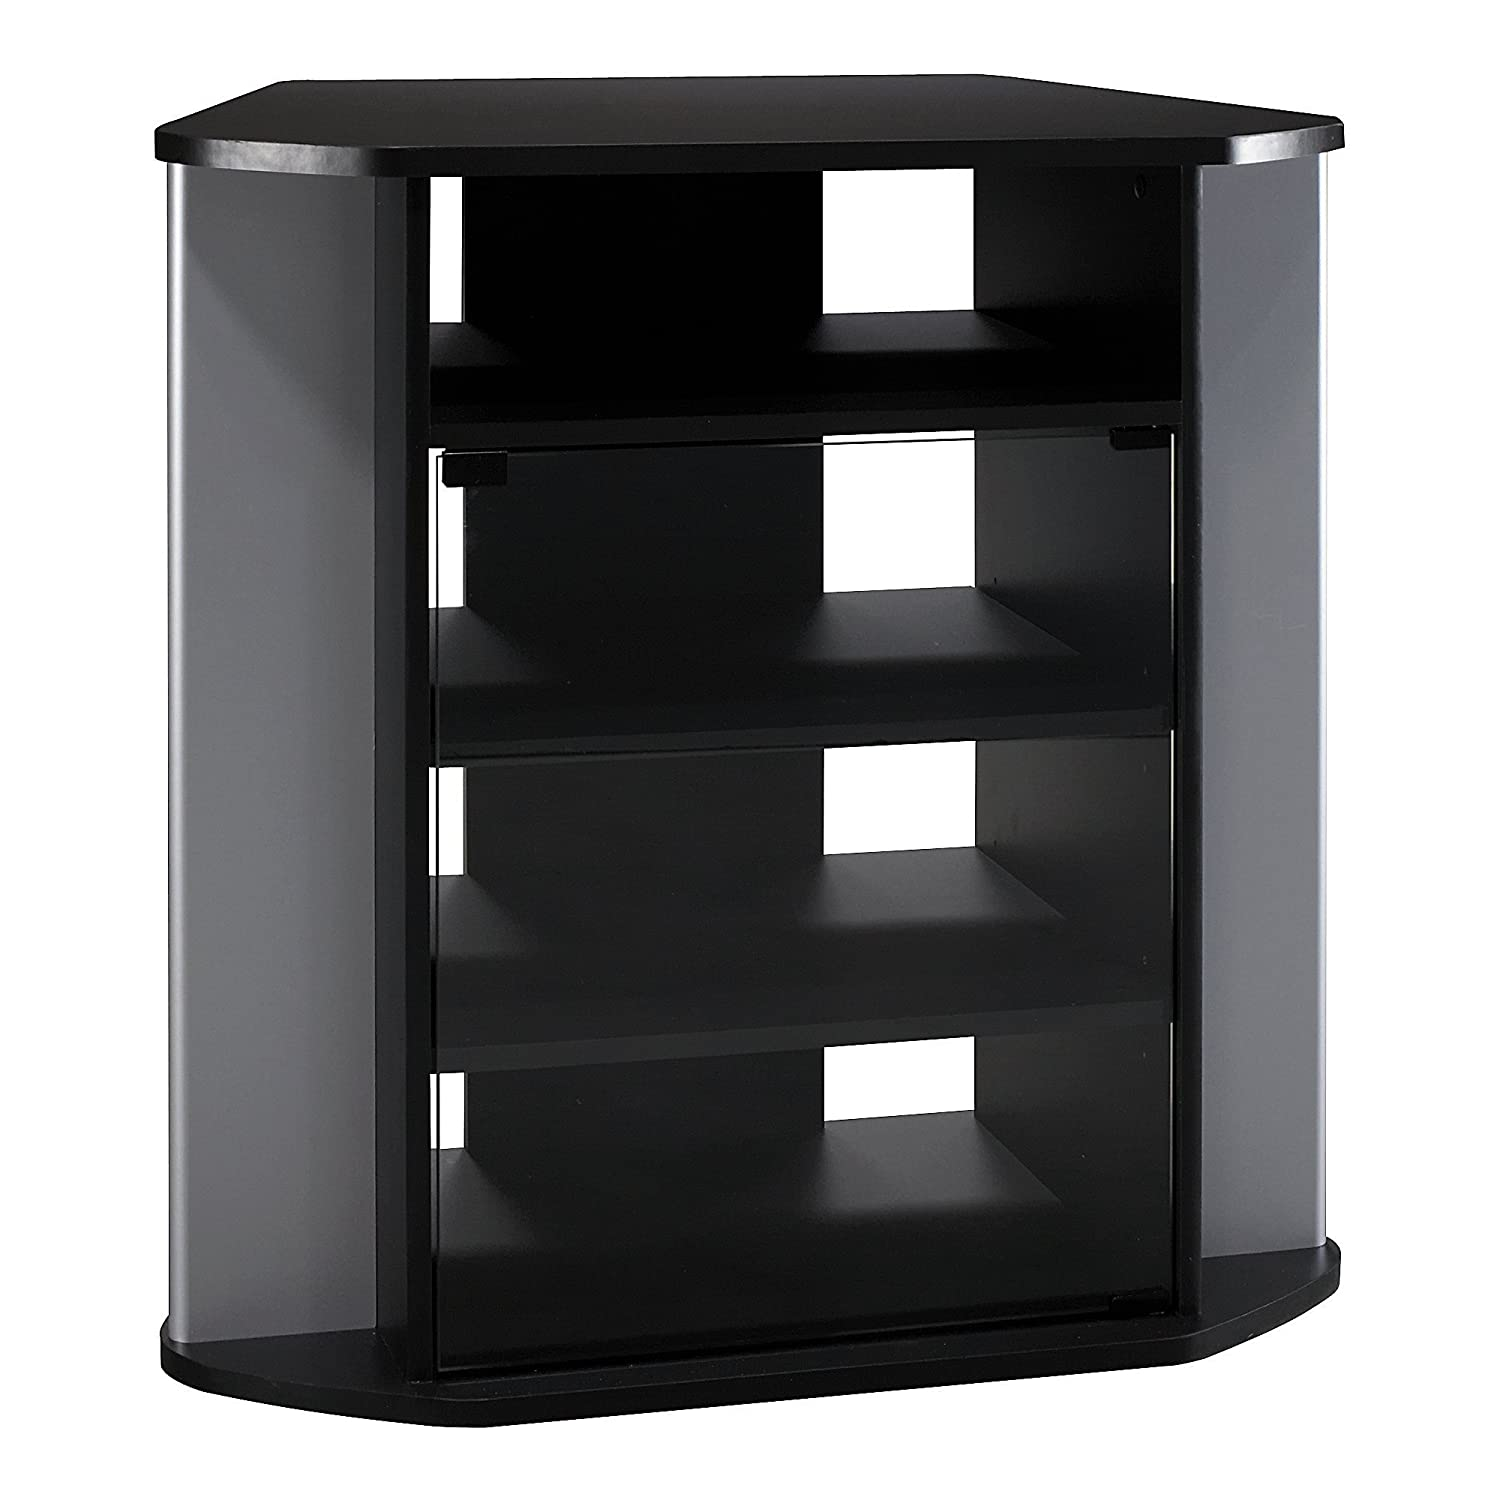 Bush Furniture Visions Tall Corner TV Stand in Black and Metallic VS97227-03